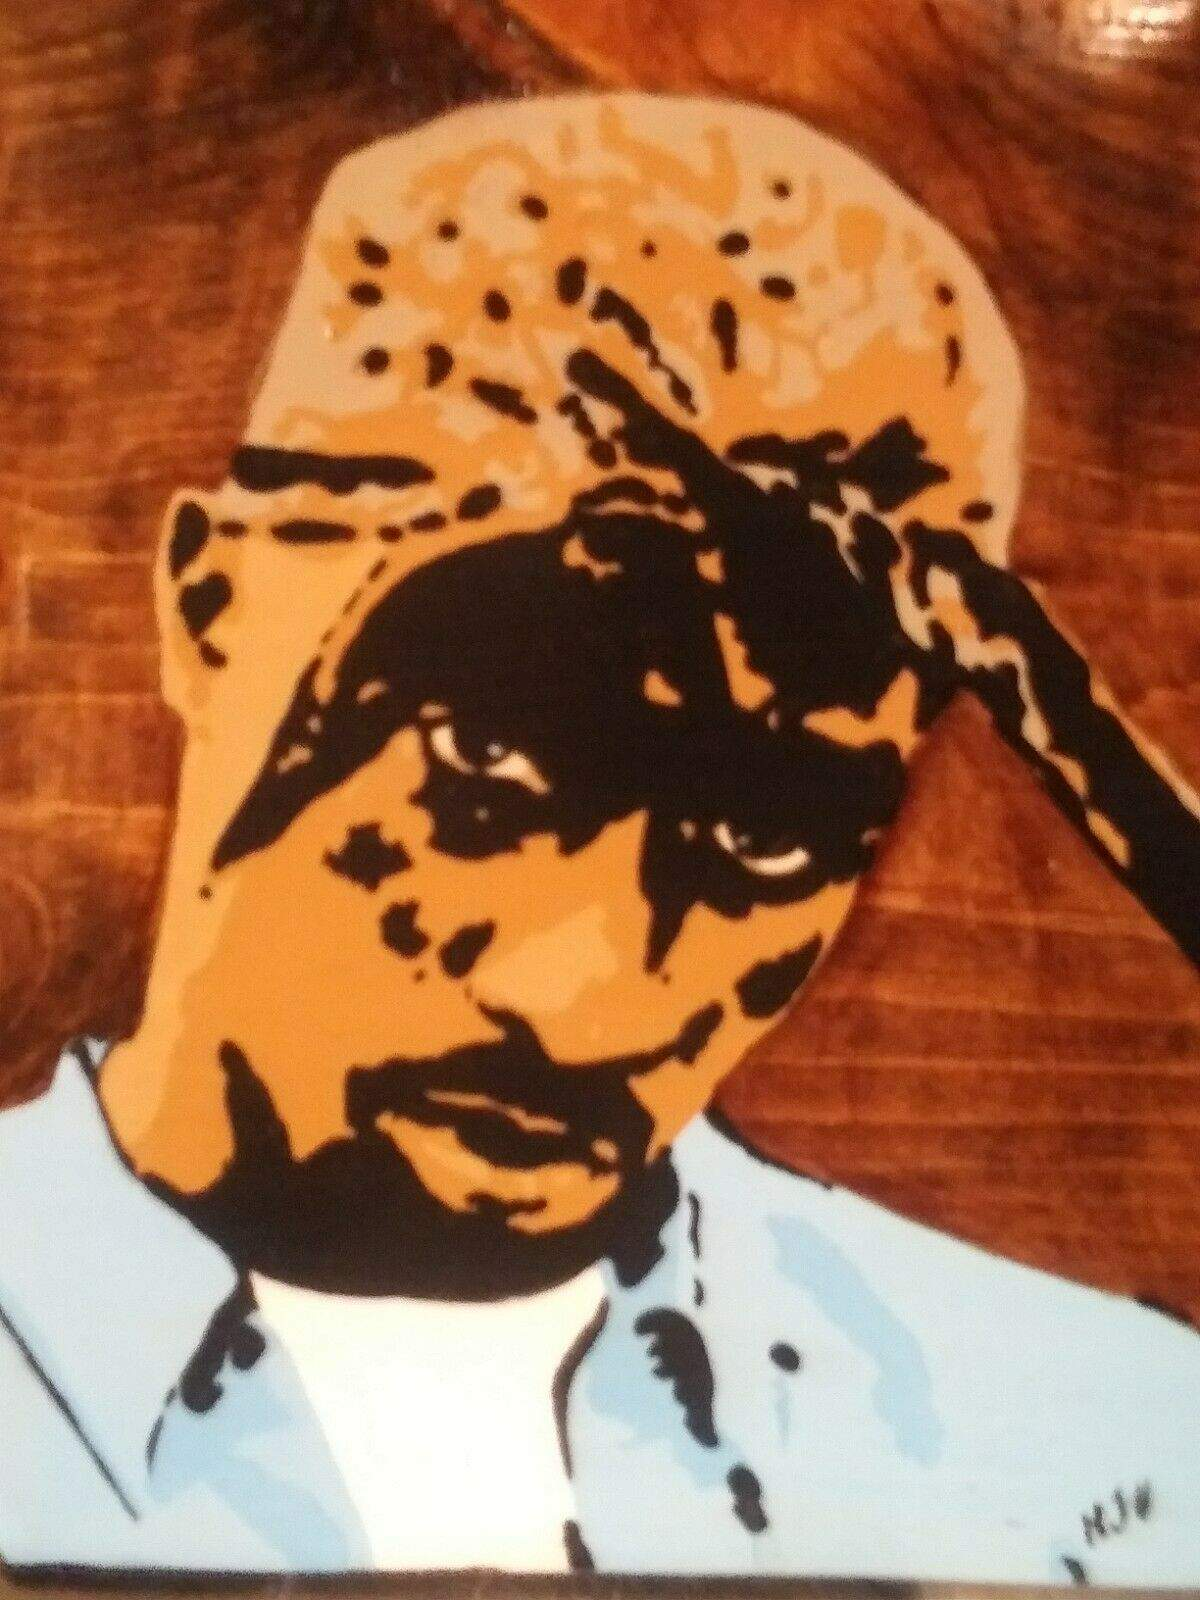 Tupac Acrylics on Wood Hand painted Pop Art